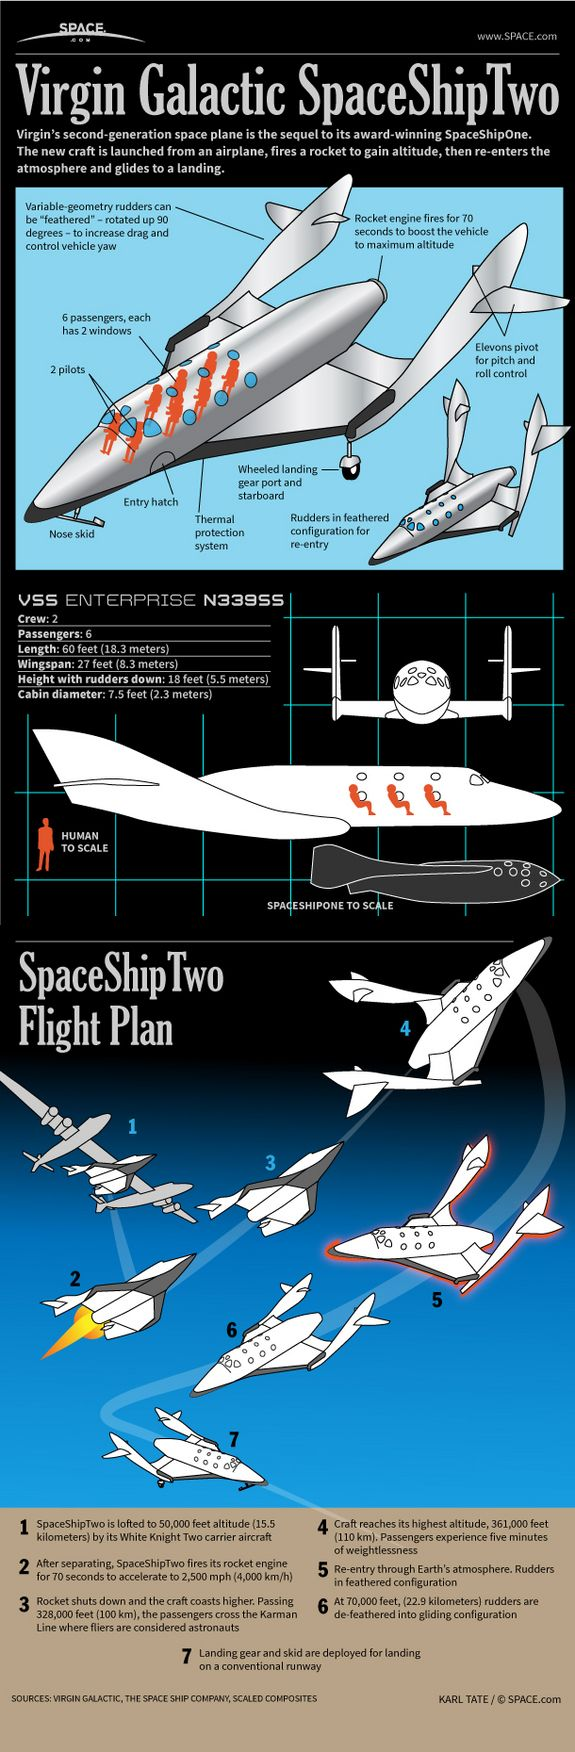 Virgin Galactic's SpaceShipTwo: It will carry six passengers up past 328,000 feet altitude (100 kilometers), the point where astronaut wings are awarded. The new craft is launched from an airplane, fires a rocket to gain altitude, then re-enters the atmosphere and glides to a landing.